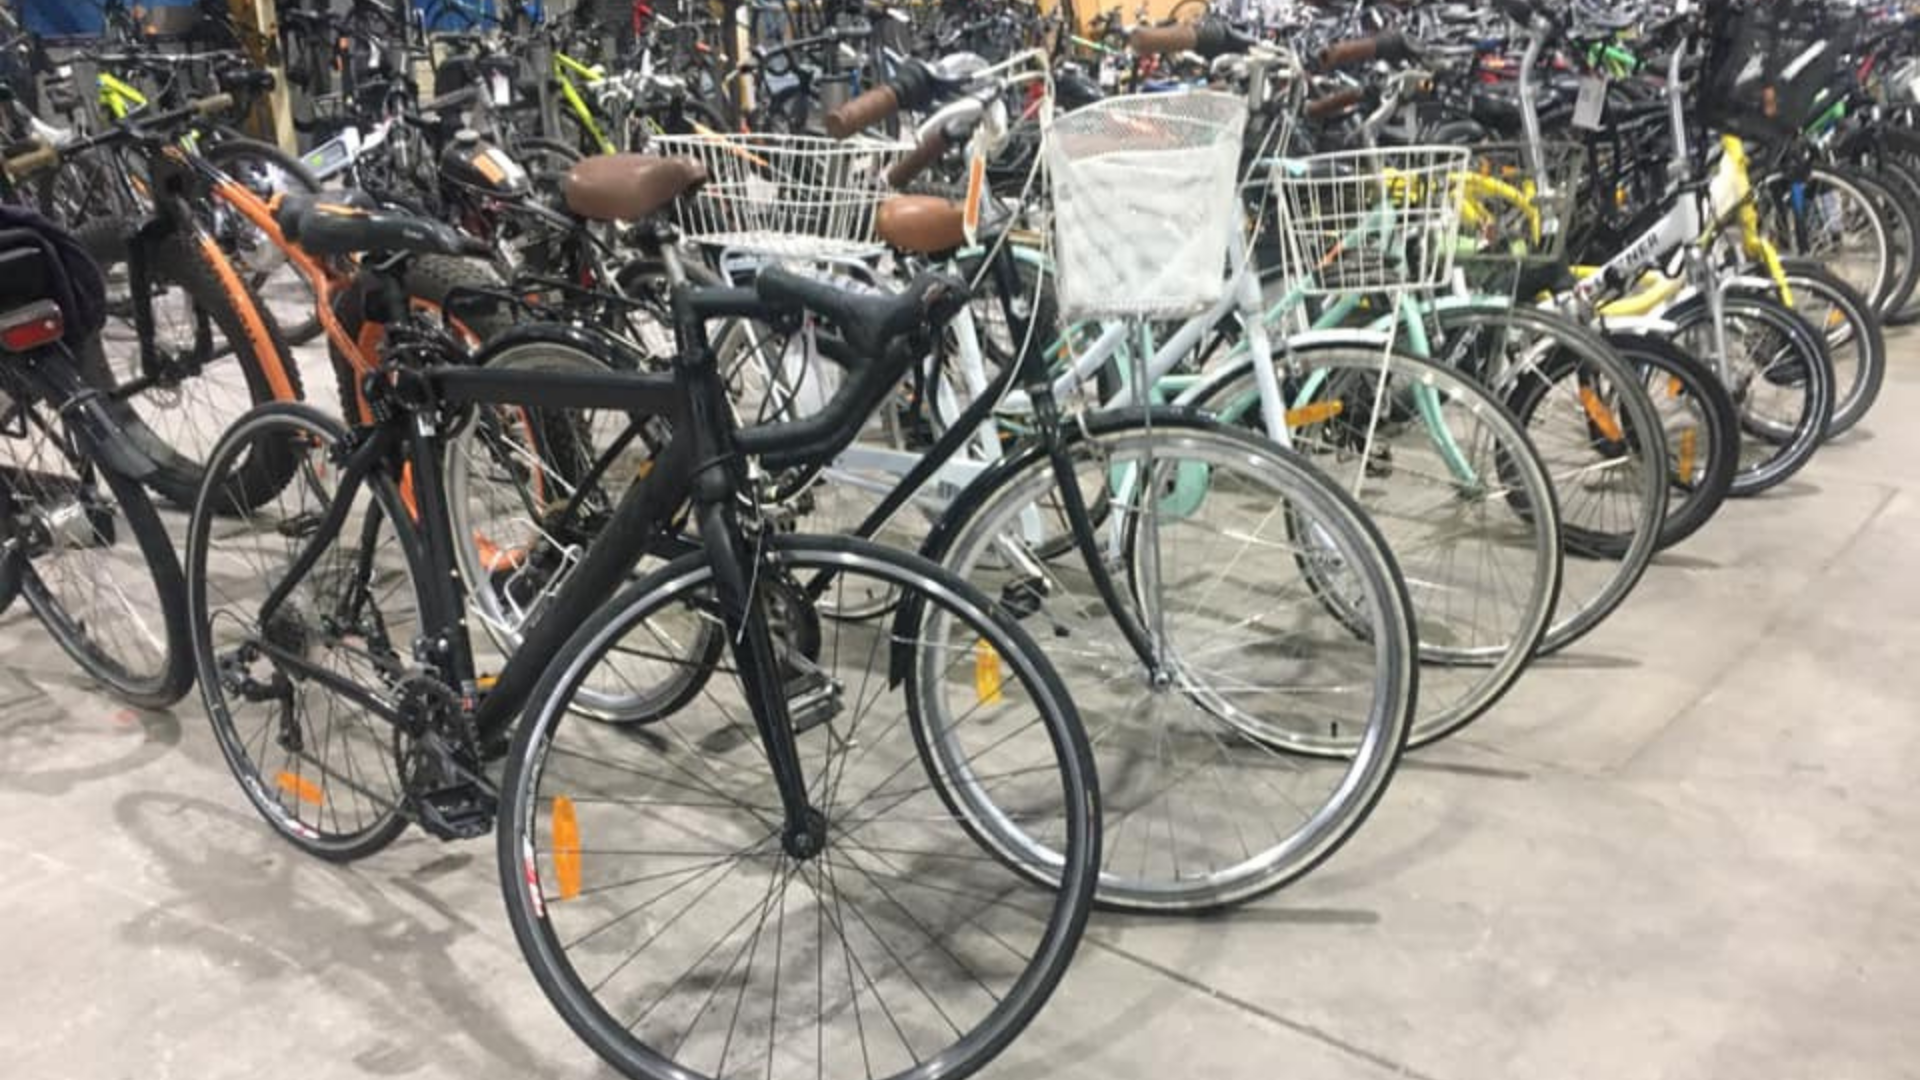 Hundreds of unclaimed stolen bikes being sold at Police Auction in Victoria